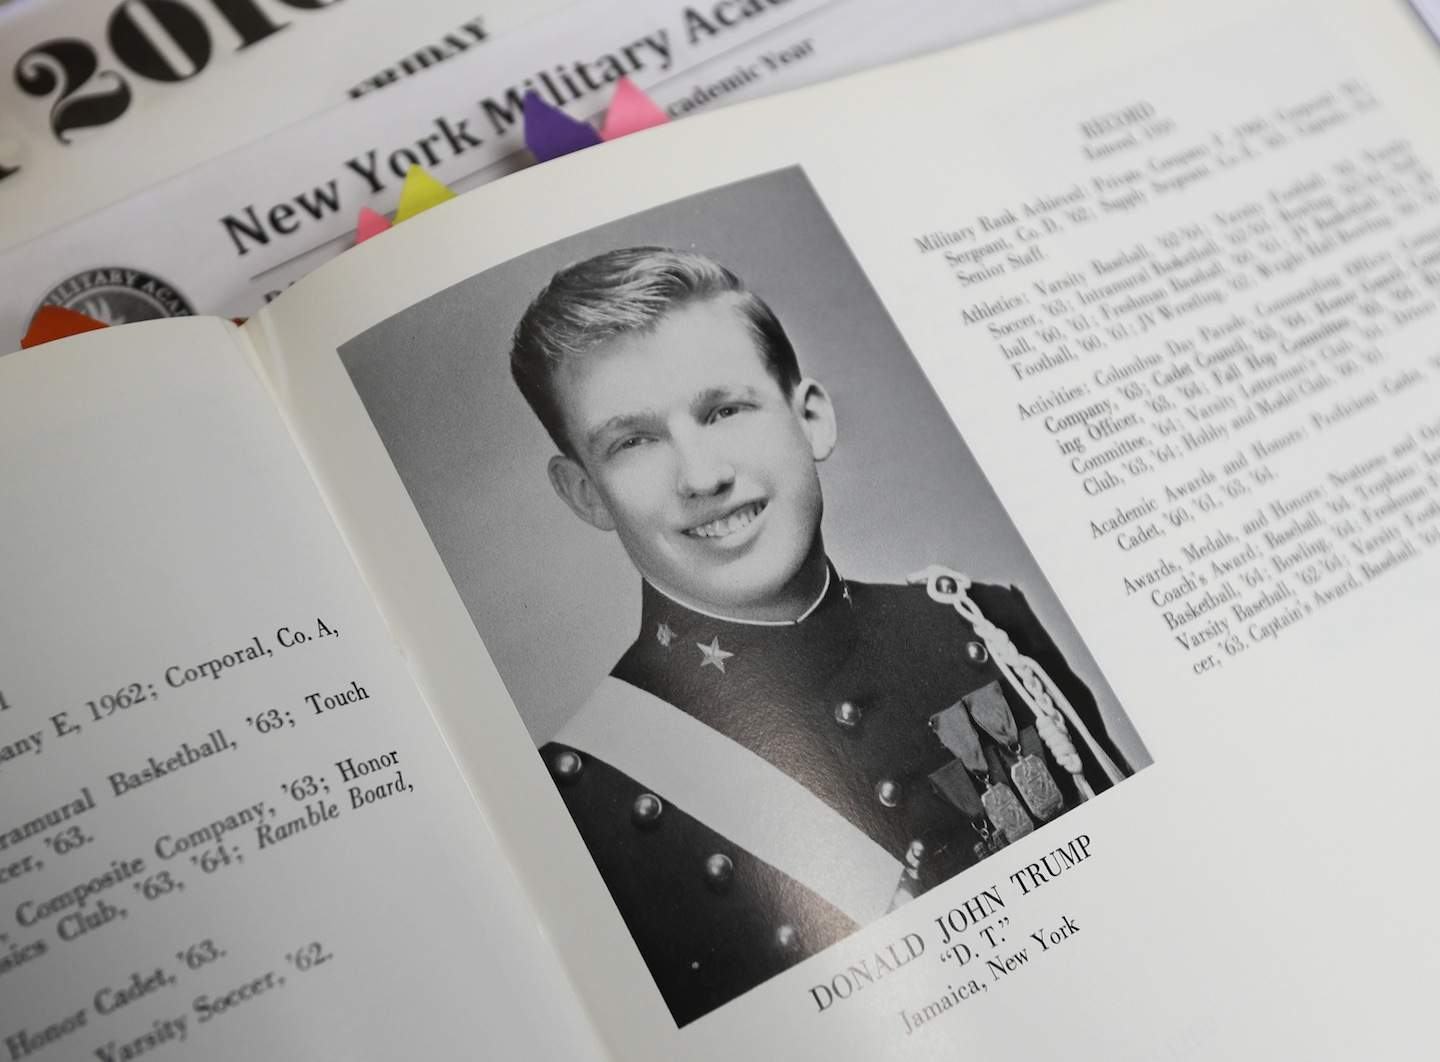 In this Thursday, Sept. 8, 2016 photo, Donald Trump is shown in the 1964 Shrapnel yearbook at the New York Military Academy in Cornwall-on-Hudson, N.Y. Trump talks tough about dealing with China, but his alma mater, the New York Military Academy, is looking to Asia to survive. The school has reopened after a rough patch with new Chinese owners and a new superintendent who emigrated from China before making her mark in the New York City school system. (AP Photo/Mike Groll)